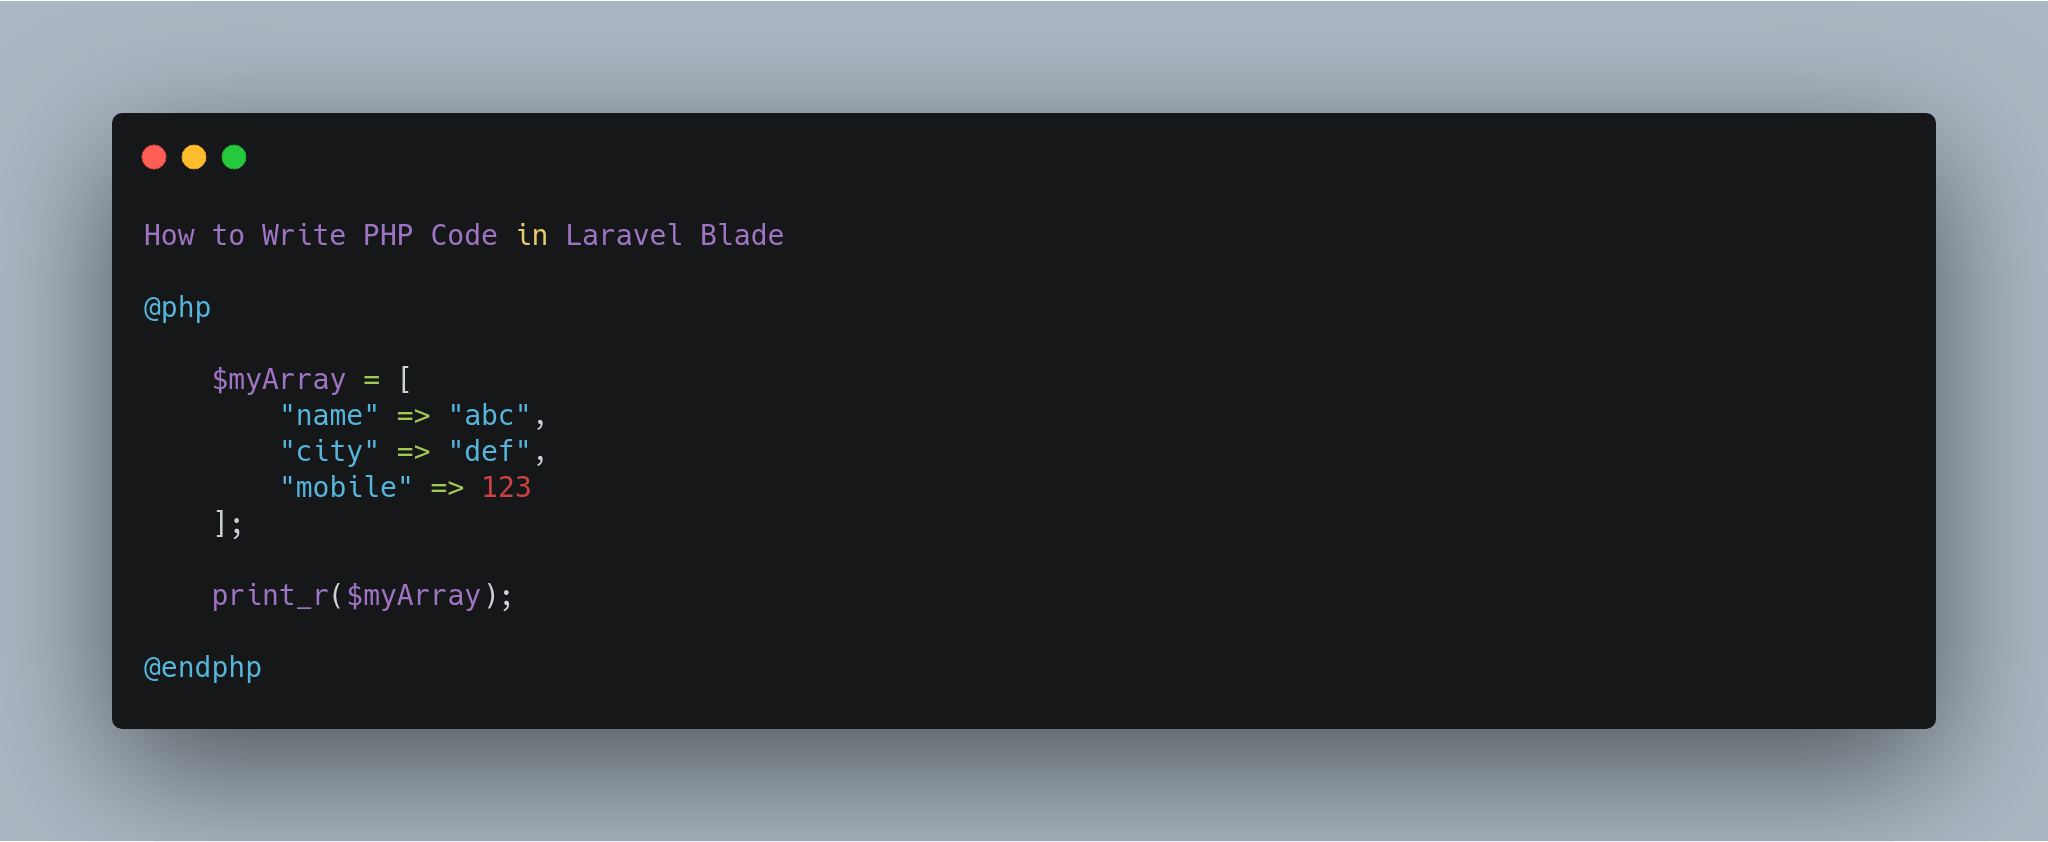 How to Write PHP Code in Laravel Blade